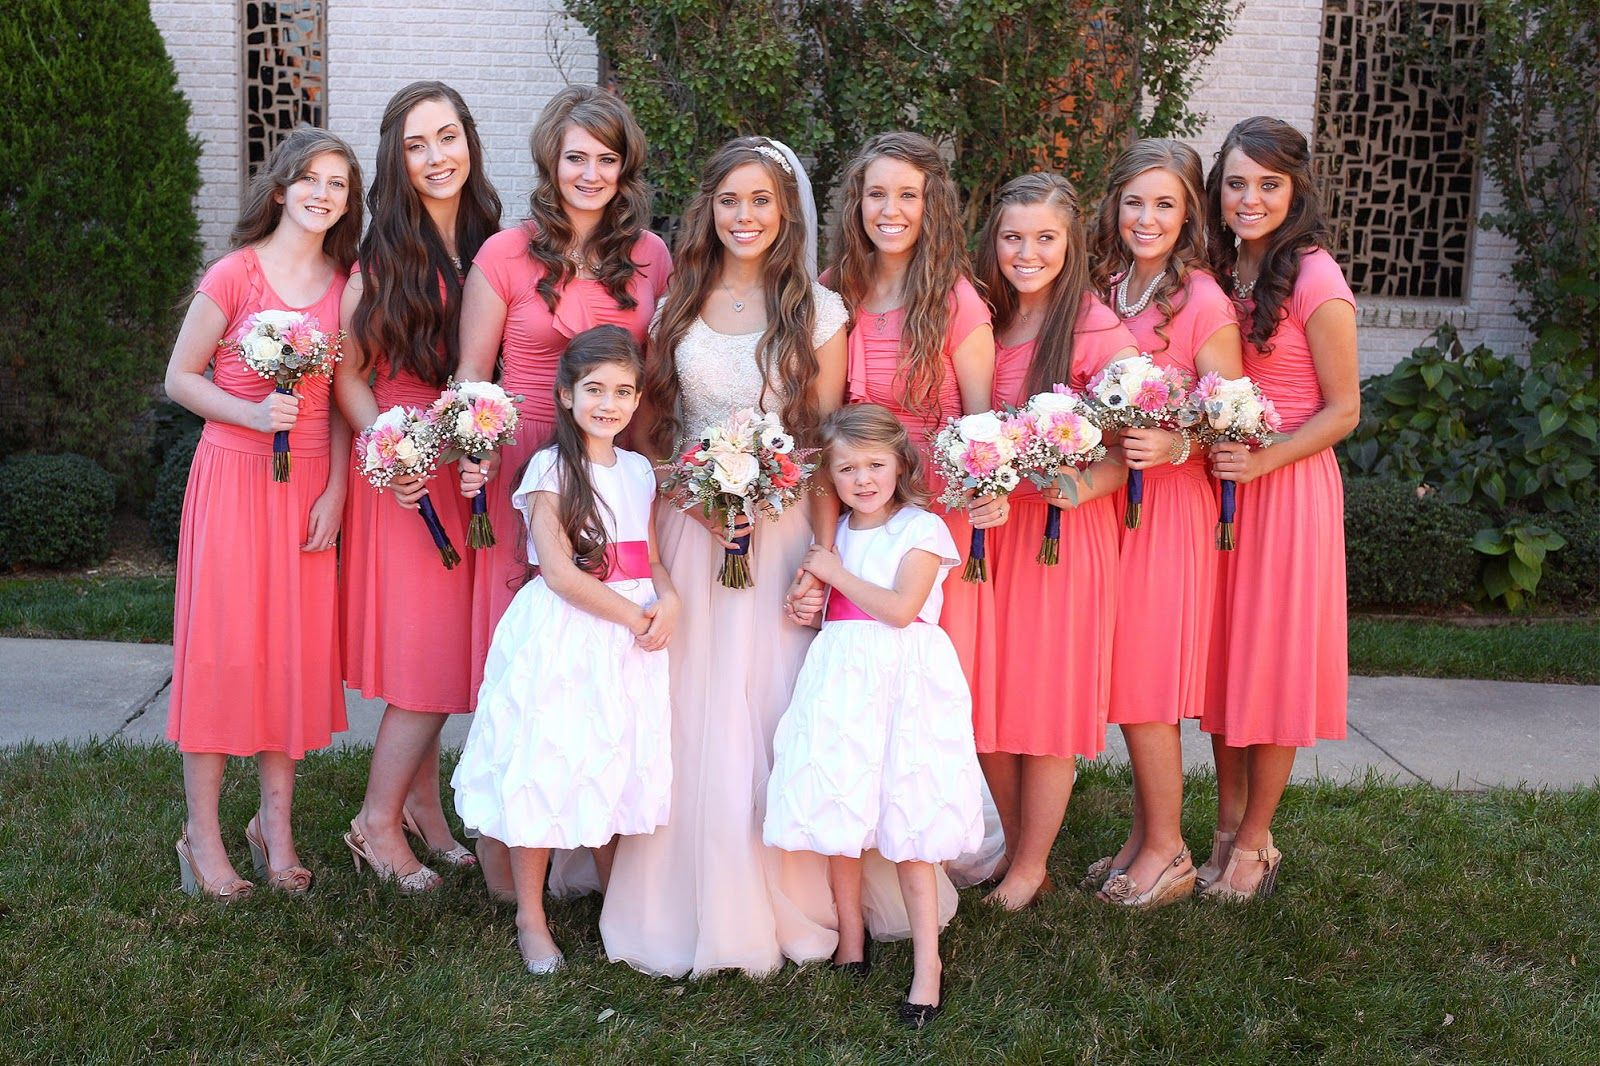 Jessa duggar and ben seewald wedding the bridesmaids for Jessa duggar wedding dress